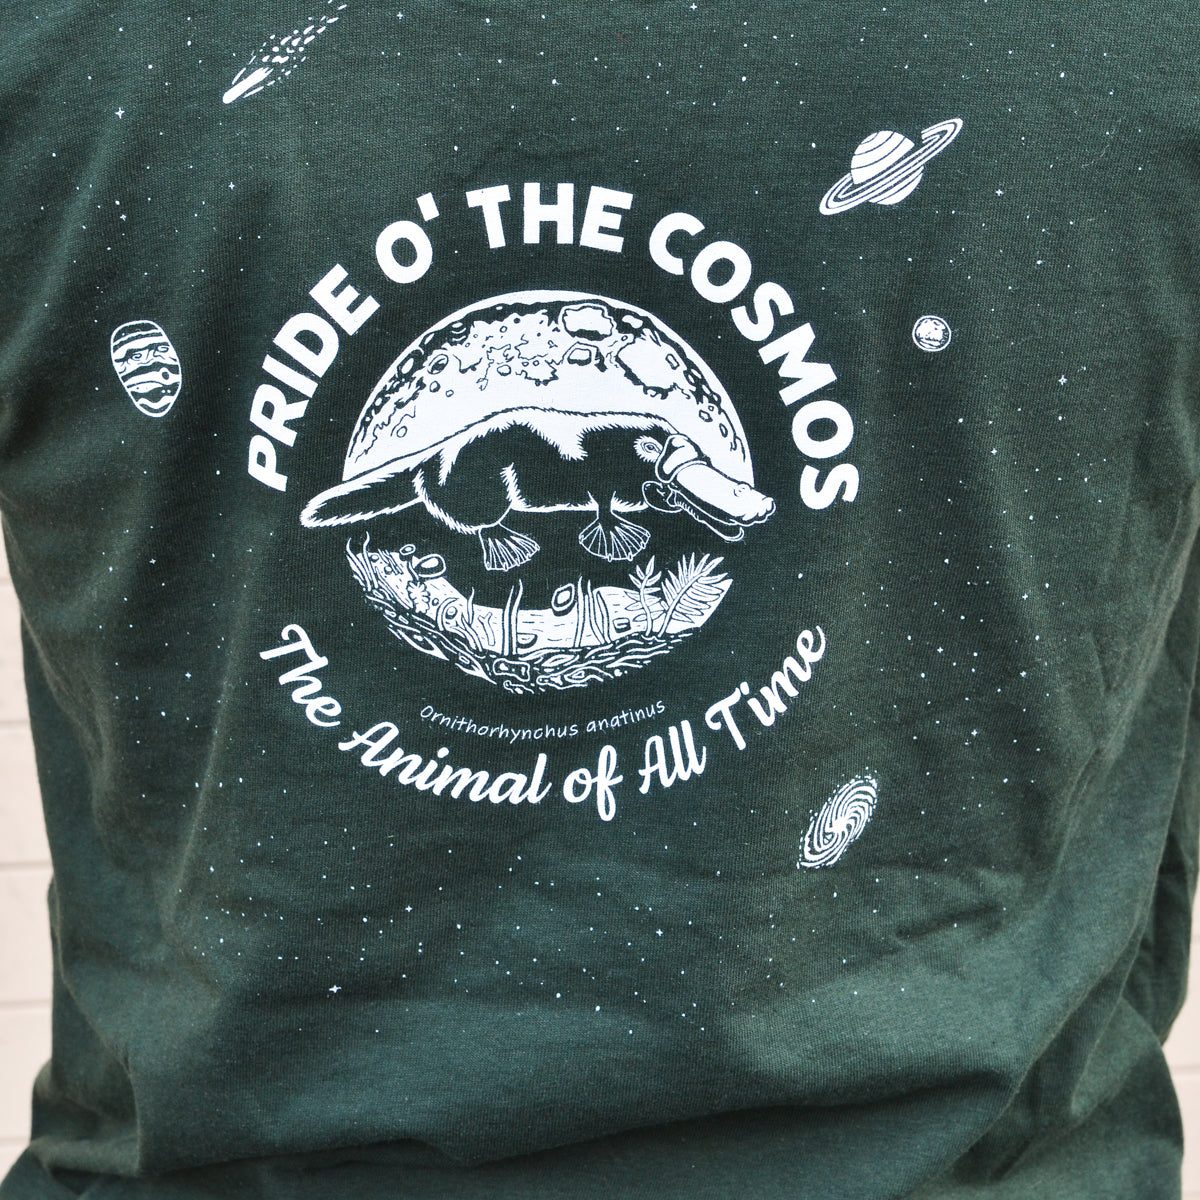 Platypus: Pride O' the Cosmos Long Sleeve - Green